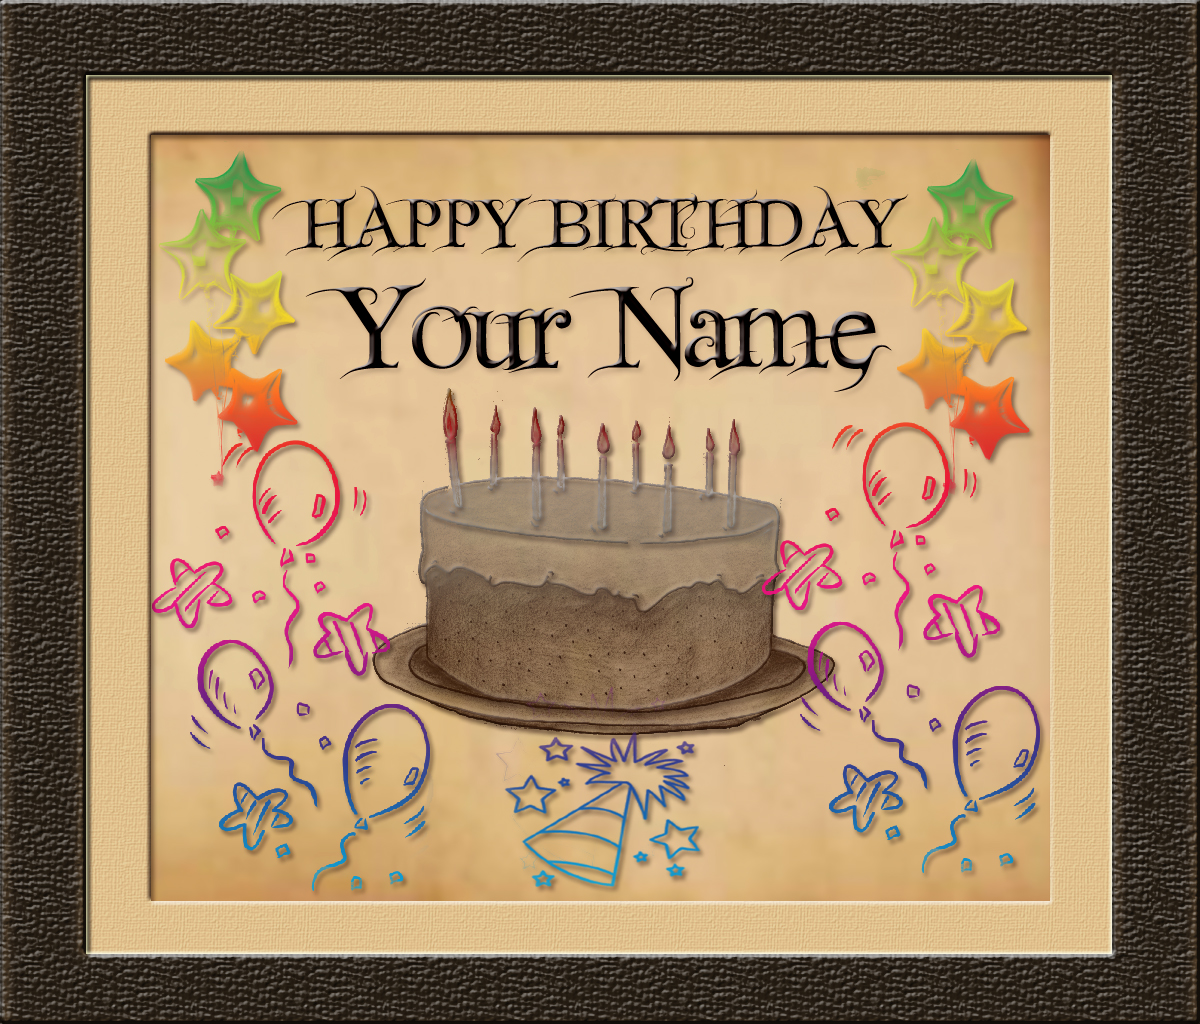 happy birthday card pictures with name ; HappyBirthdayYourName